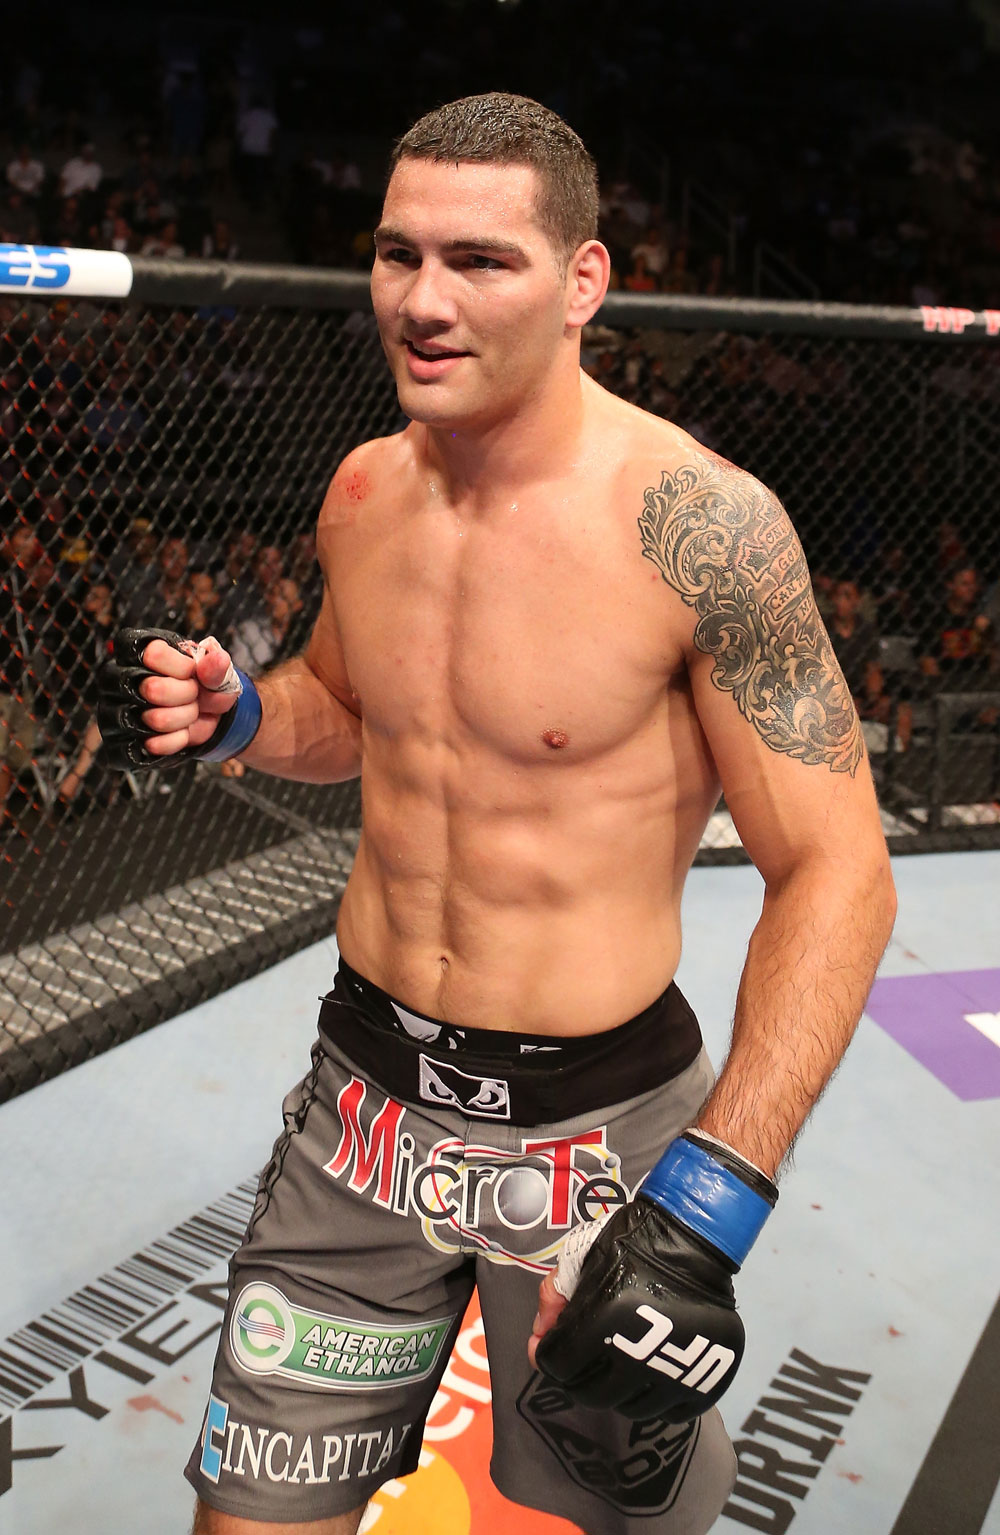 UFC middleweight contender Chris Weidman